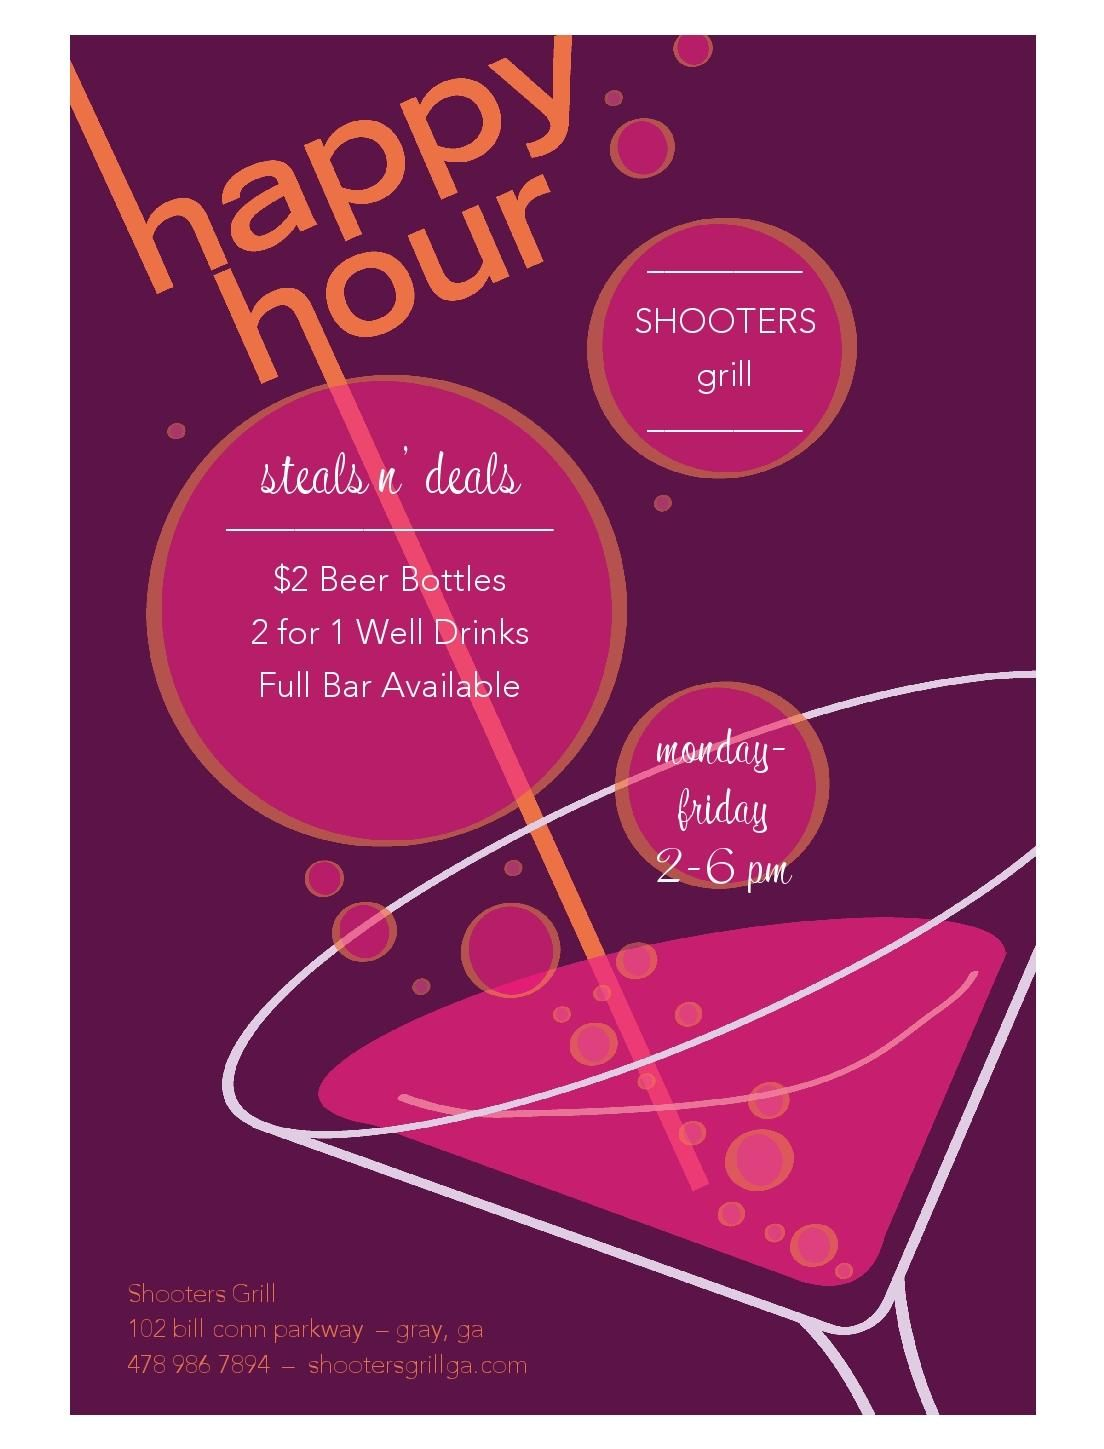 Shooters grill and bar happy hour specials deals pinterest shooters grill and bar happy hour specials maxwellsz